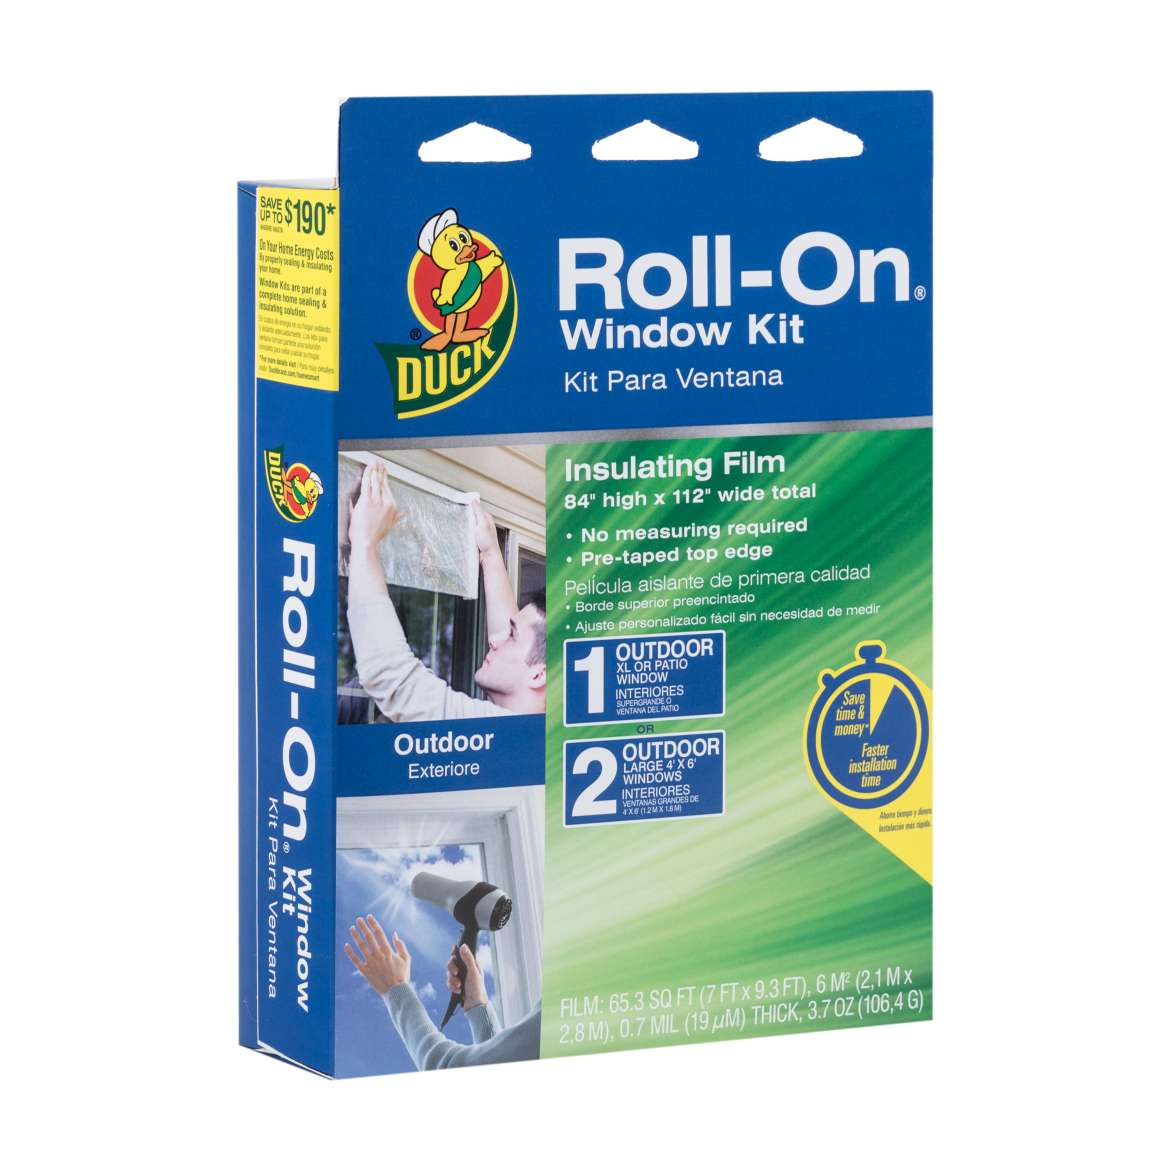 Duck® Brand Roll-On® Window Insulation Film Kit - Outdoor, 84 in. x 112 in. Image